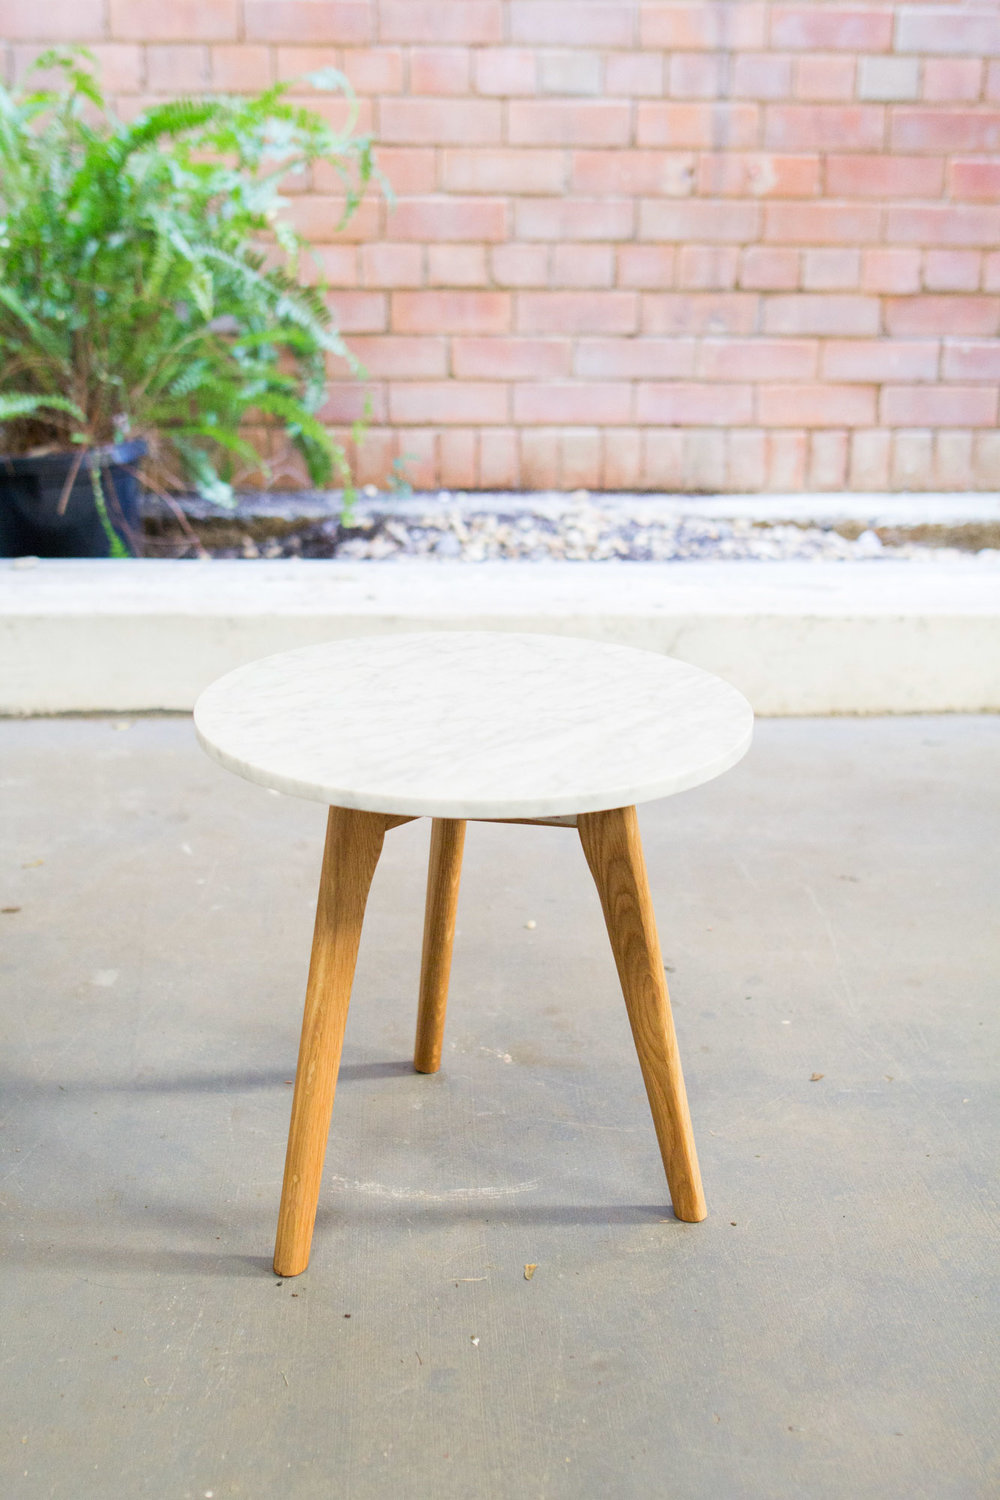 Marble and Timber side table avideas brisbane.jpeg